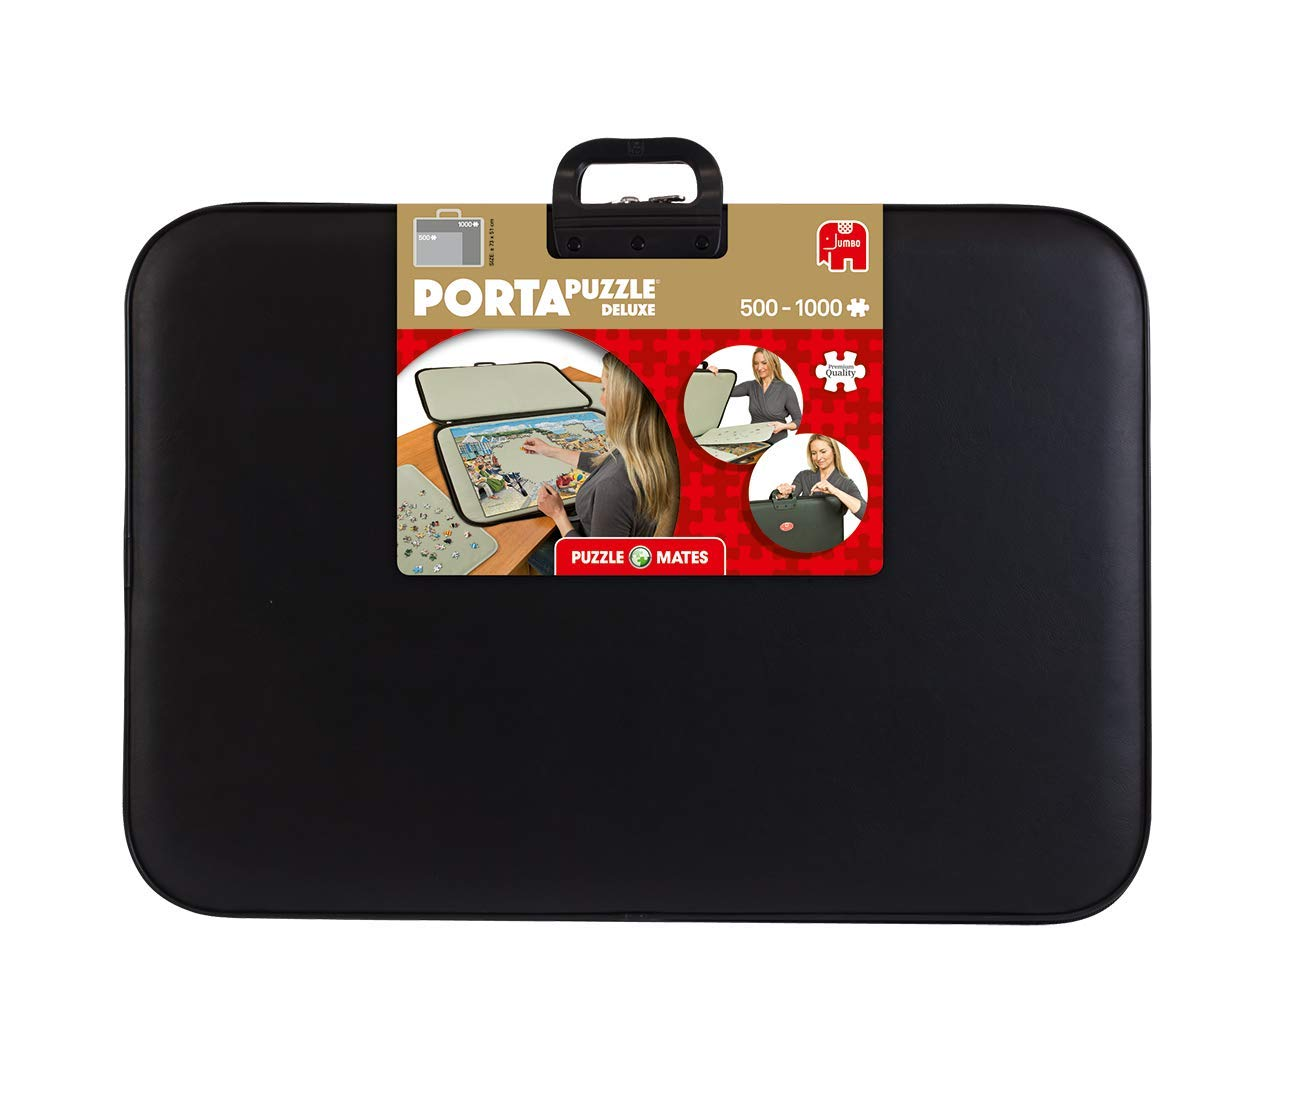 Portapuzzle Deluxe 1000 Jigsaw Puzzle Accessory